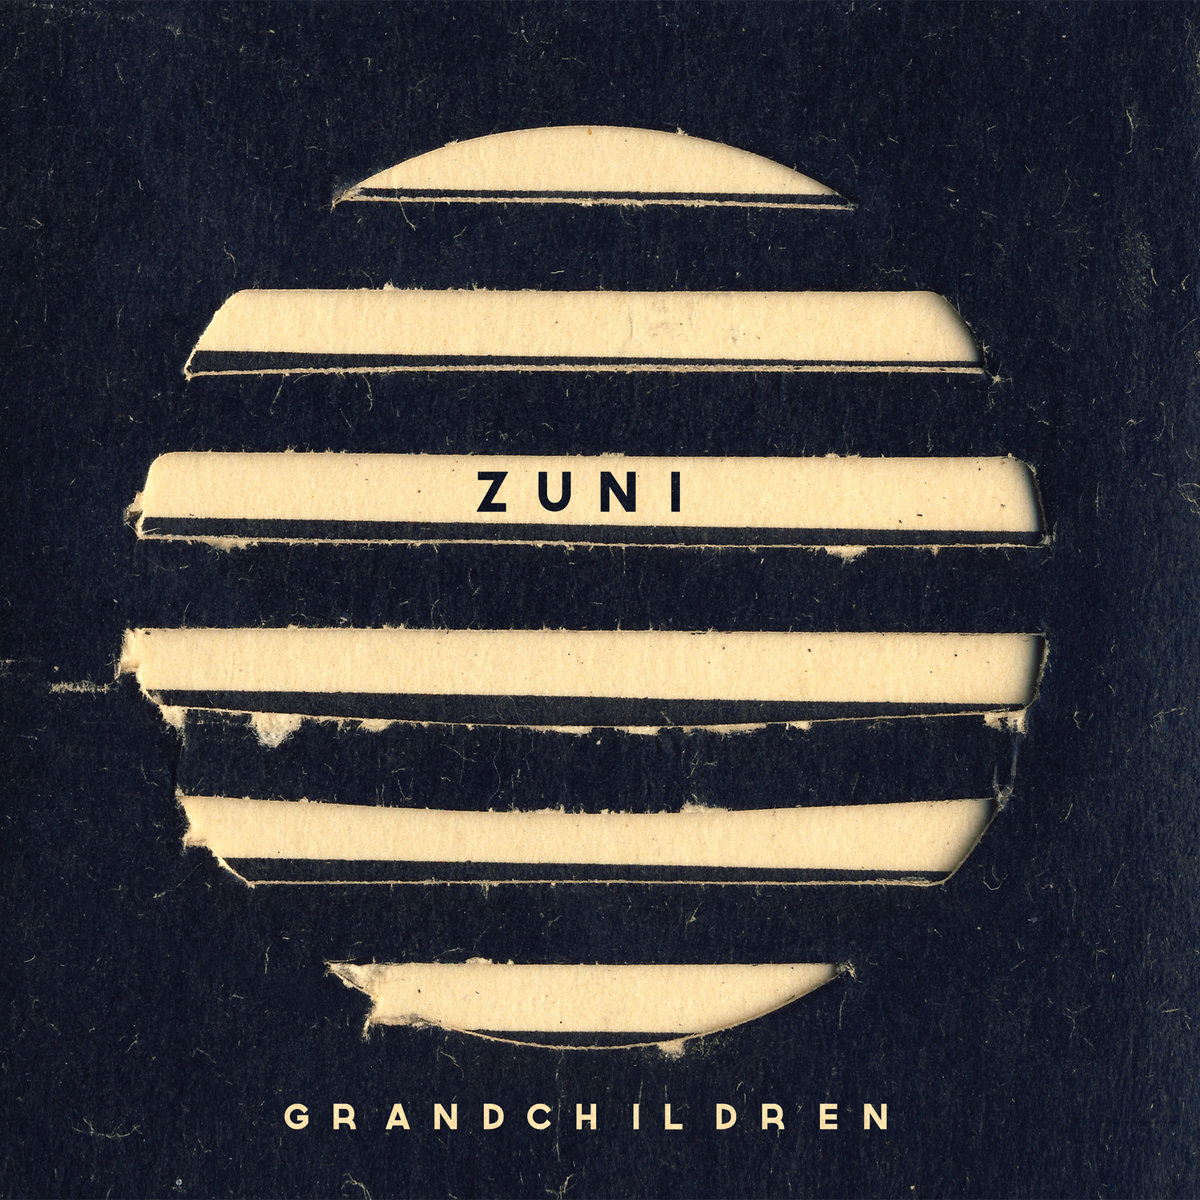 Grandchildren - Zuni